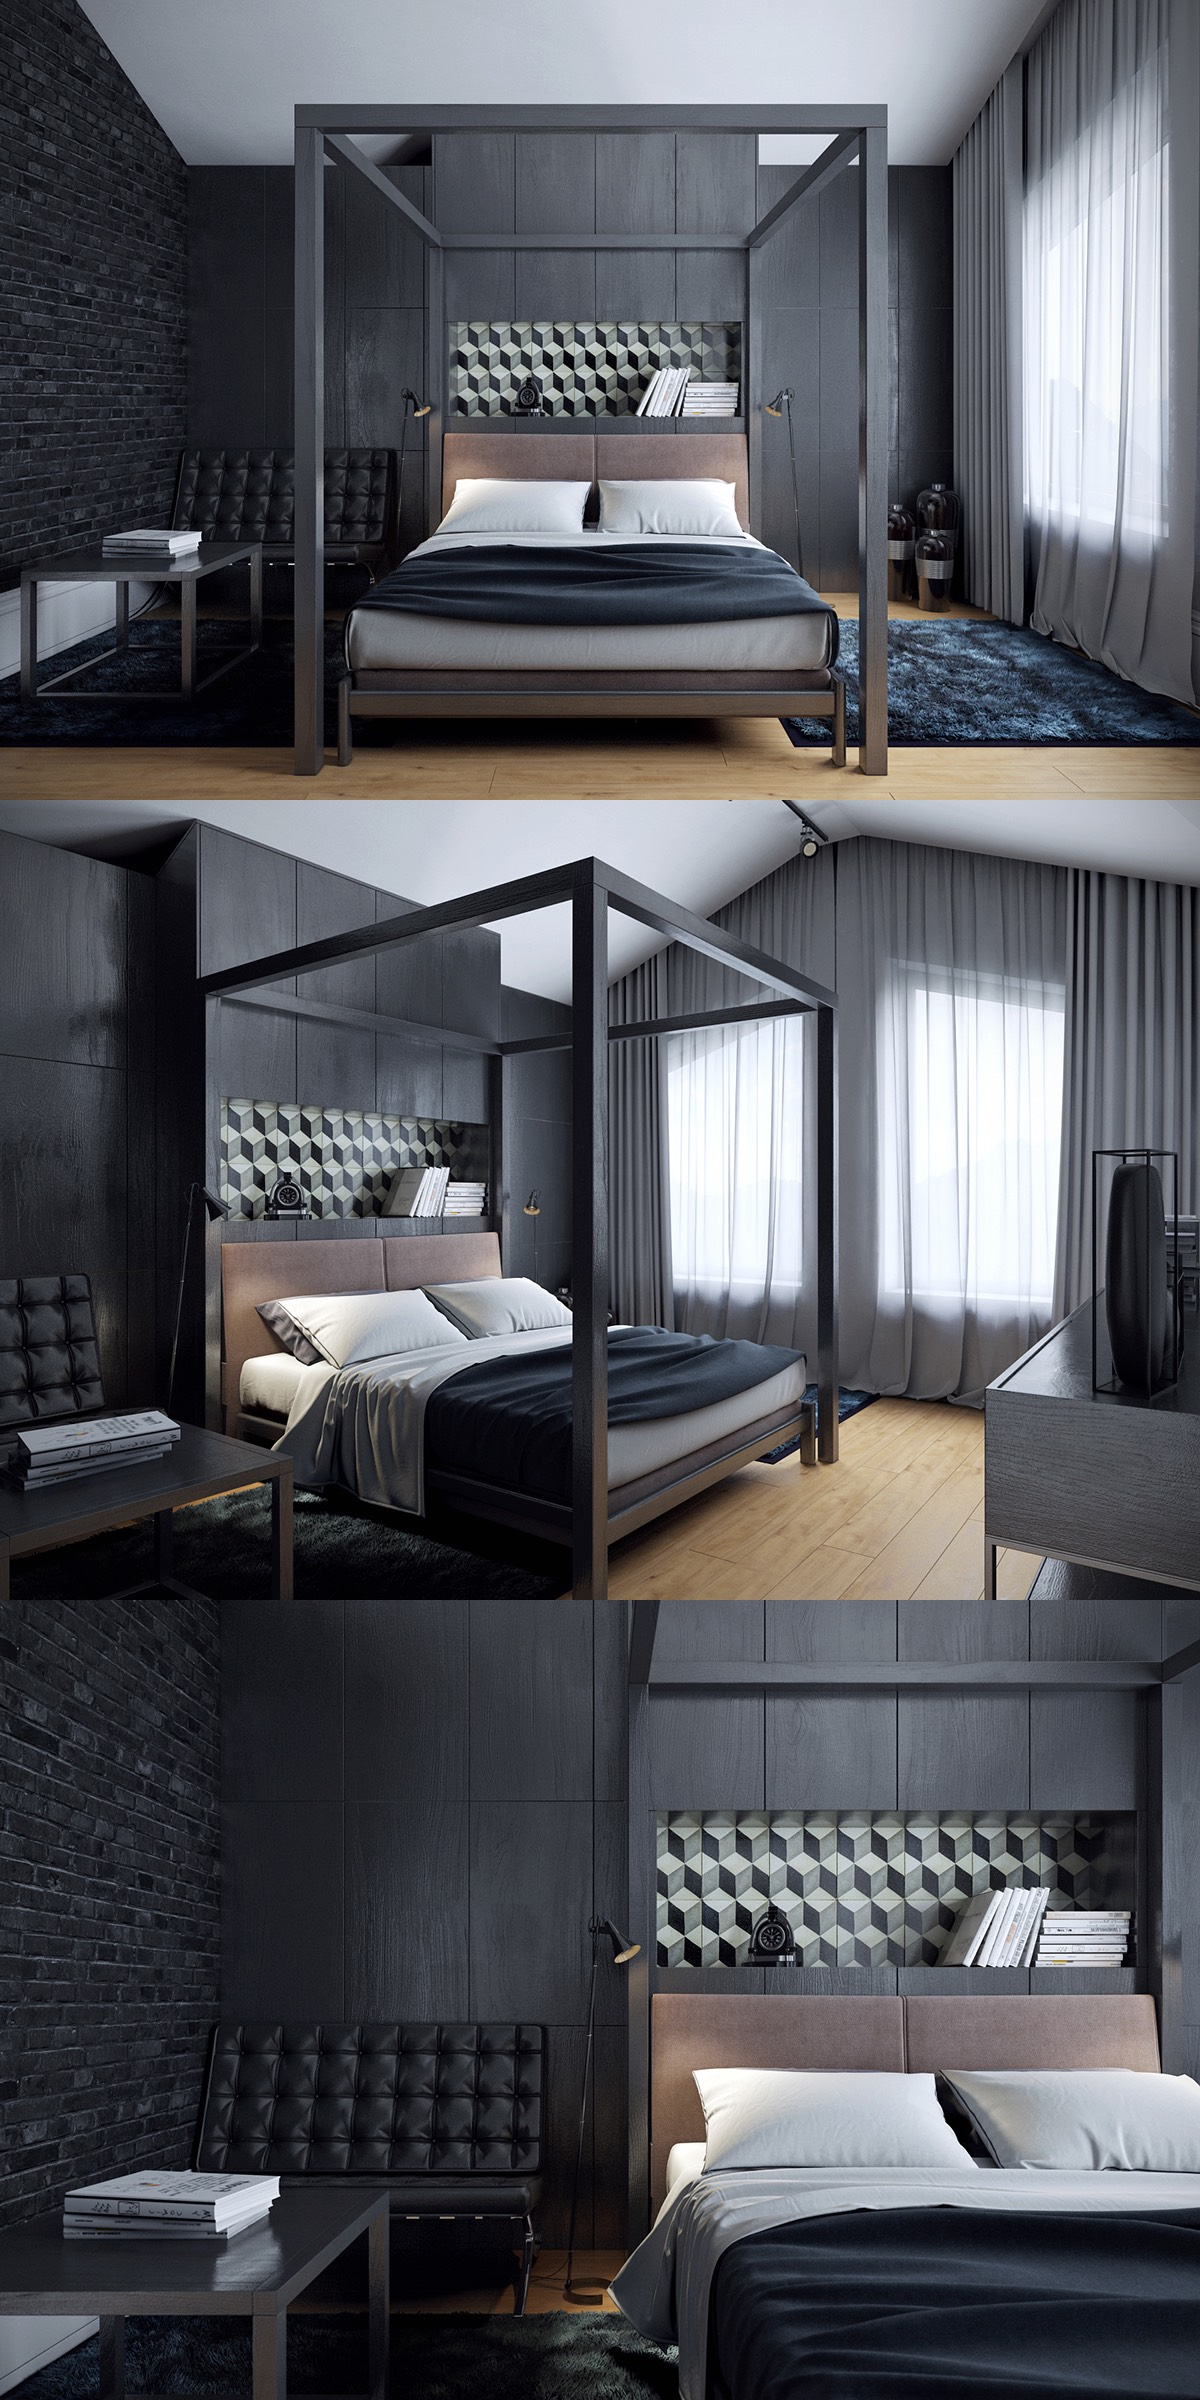 Dark bedroom concept